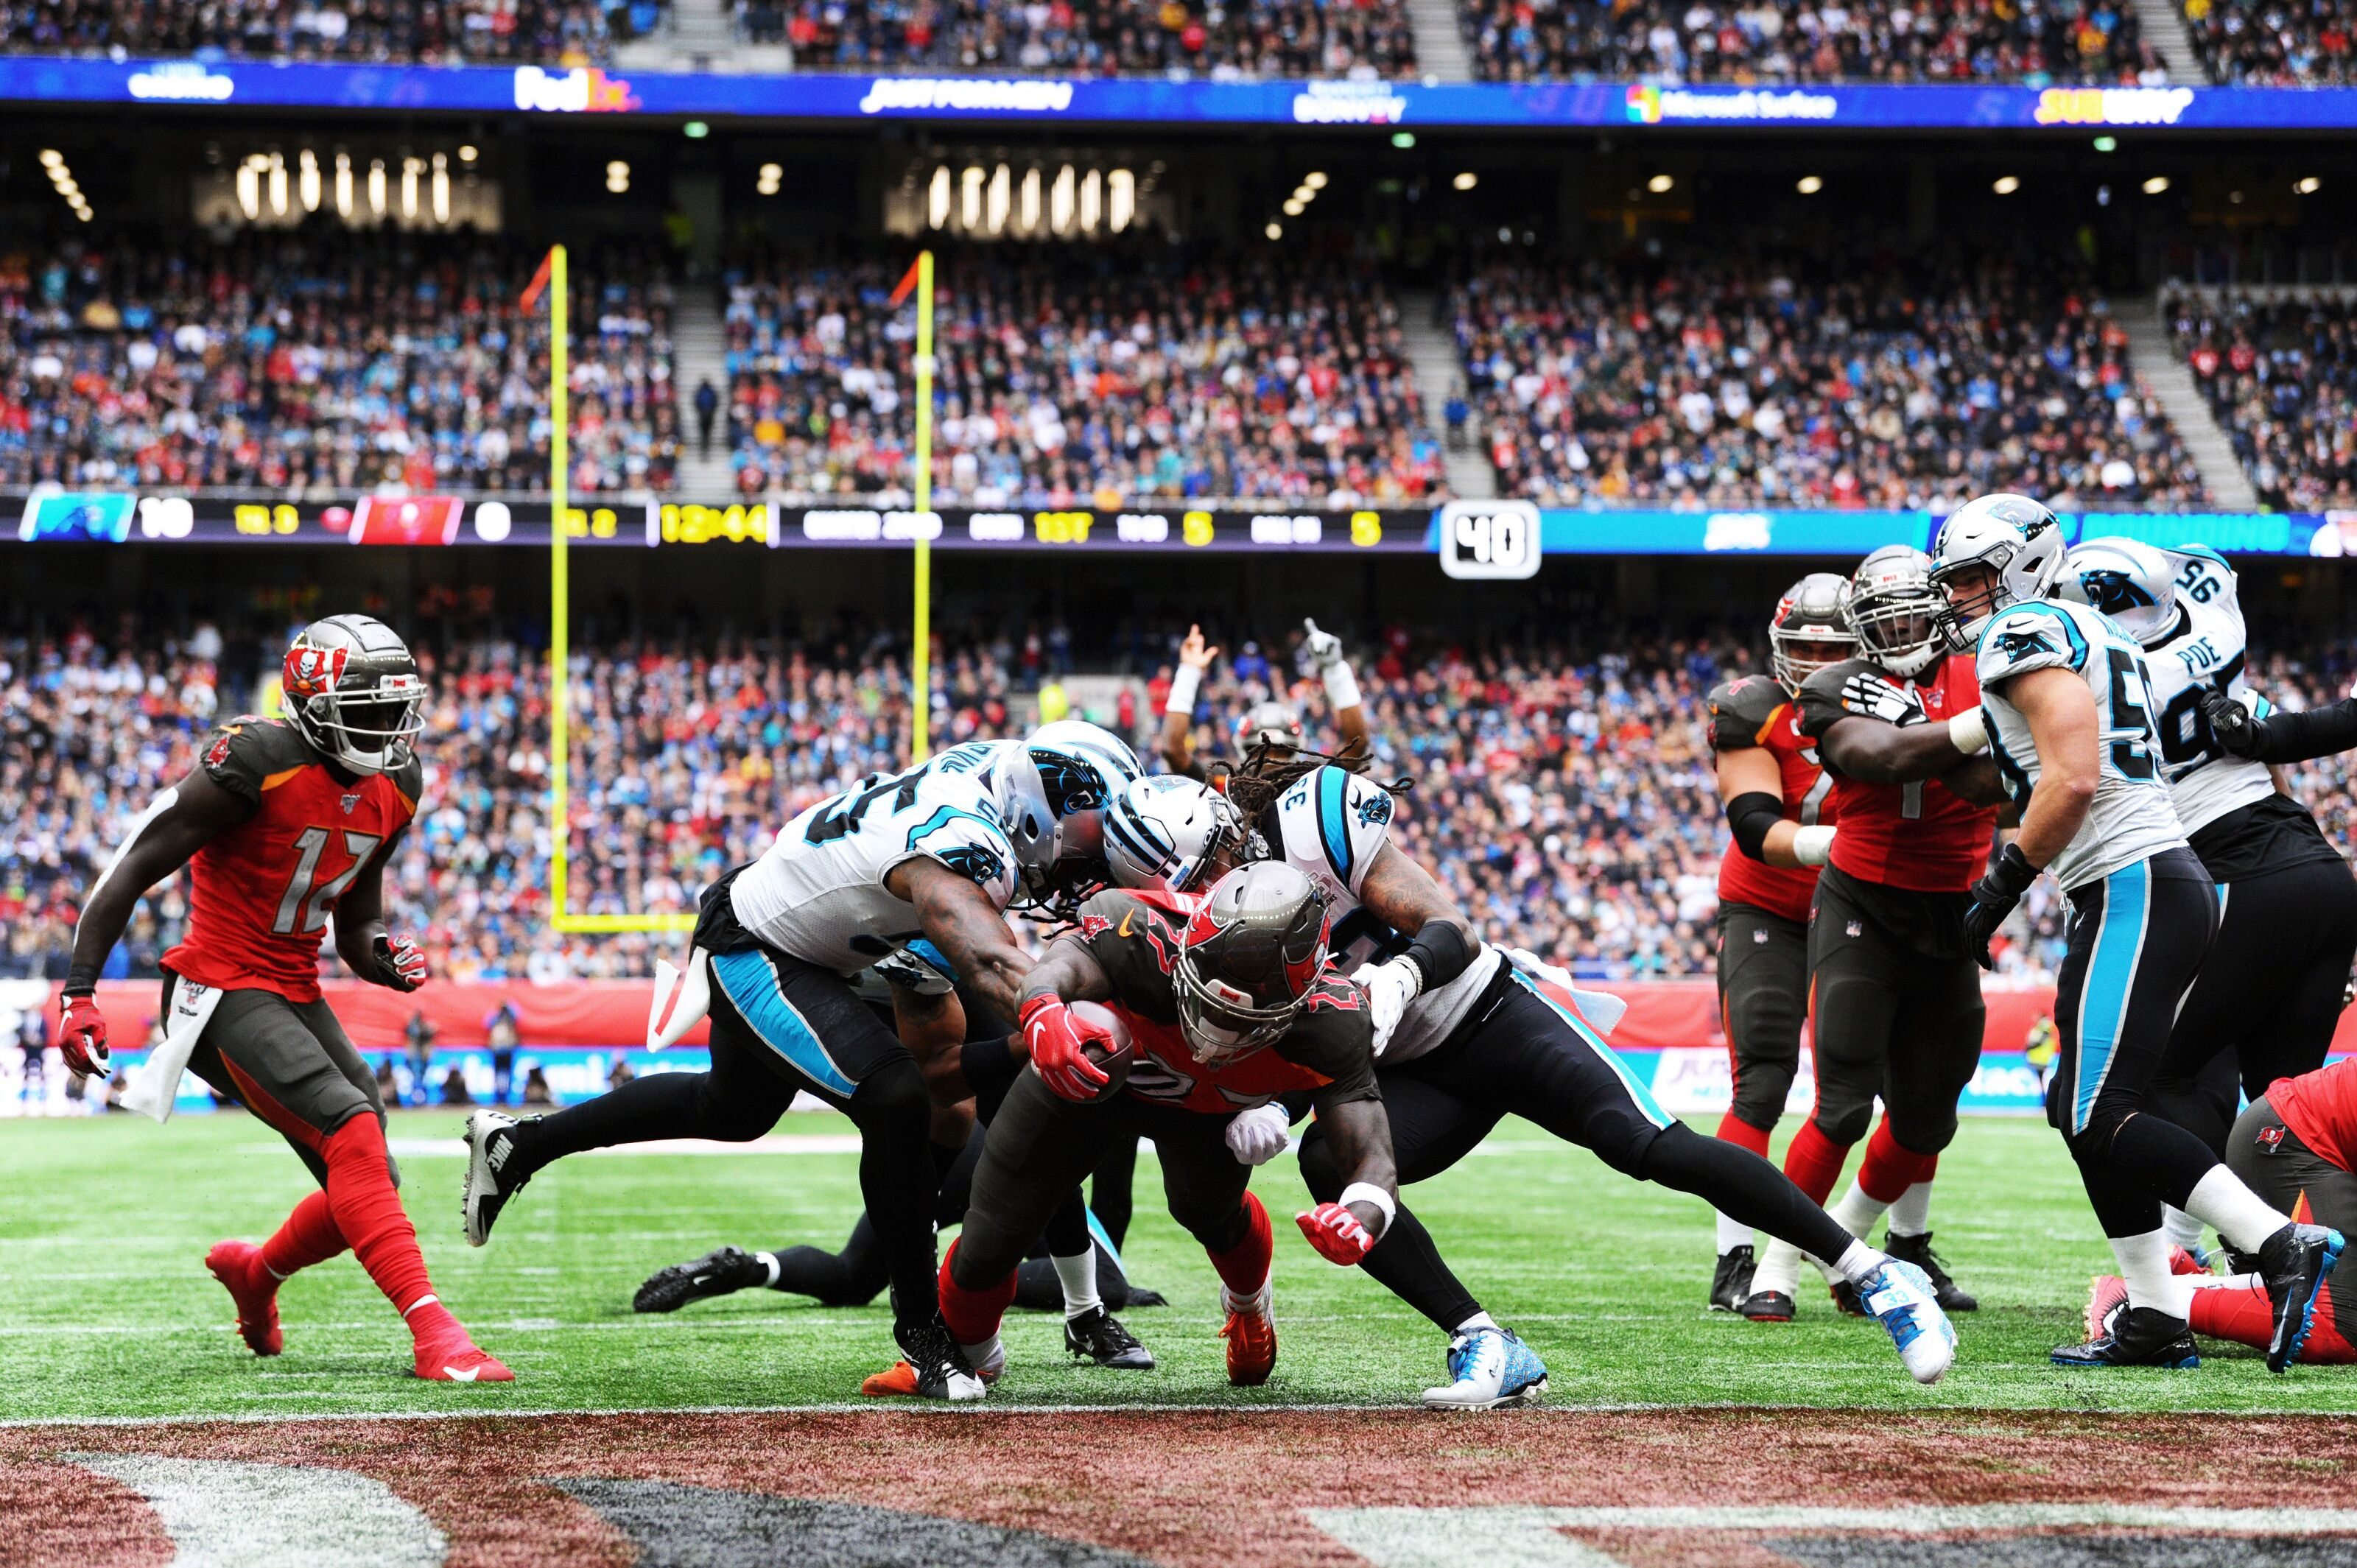 Gerald McCoy, Panthers defense dominate Buccaneers in London